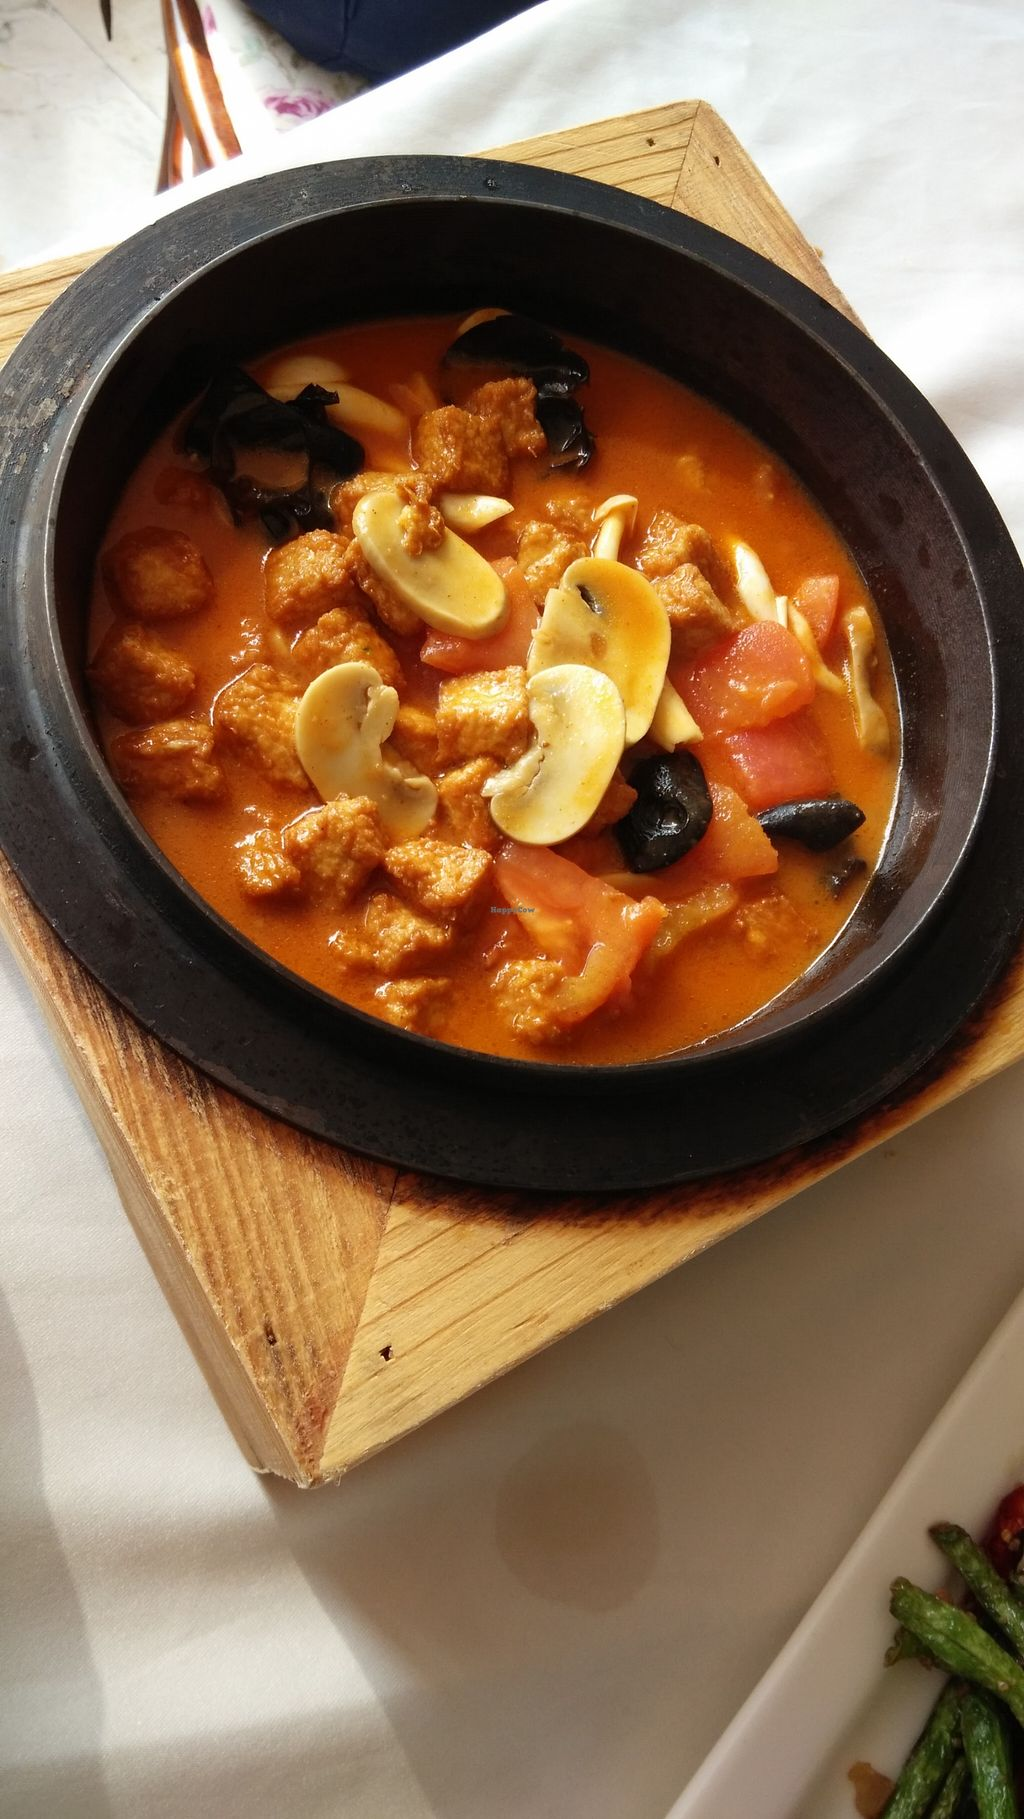 """Photo of Vegetarian Life Style - Zao Zi Shu - Yuanshen  by <a href=""""/members/profile/Drabbitgon"""">Drabbitgon</a> <br/>Curry hot pot  <br/> January 19, 2016  - <a href='/contact/abuse/image/39903/133048'>Report</a>"""